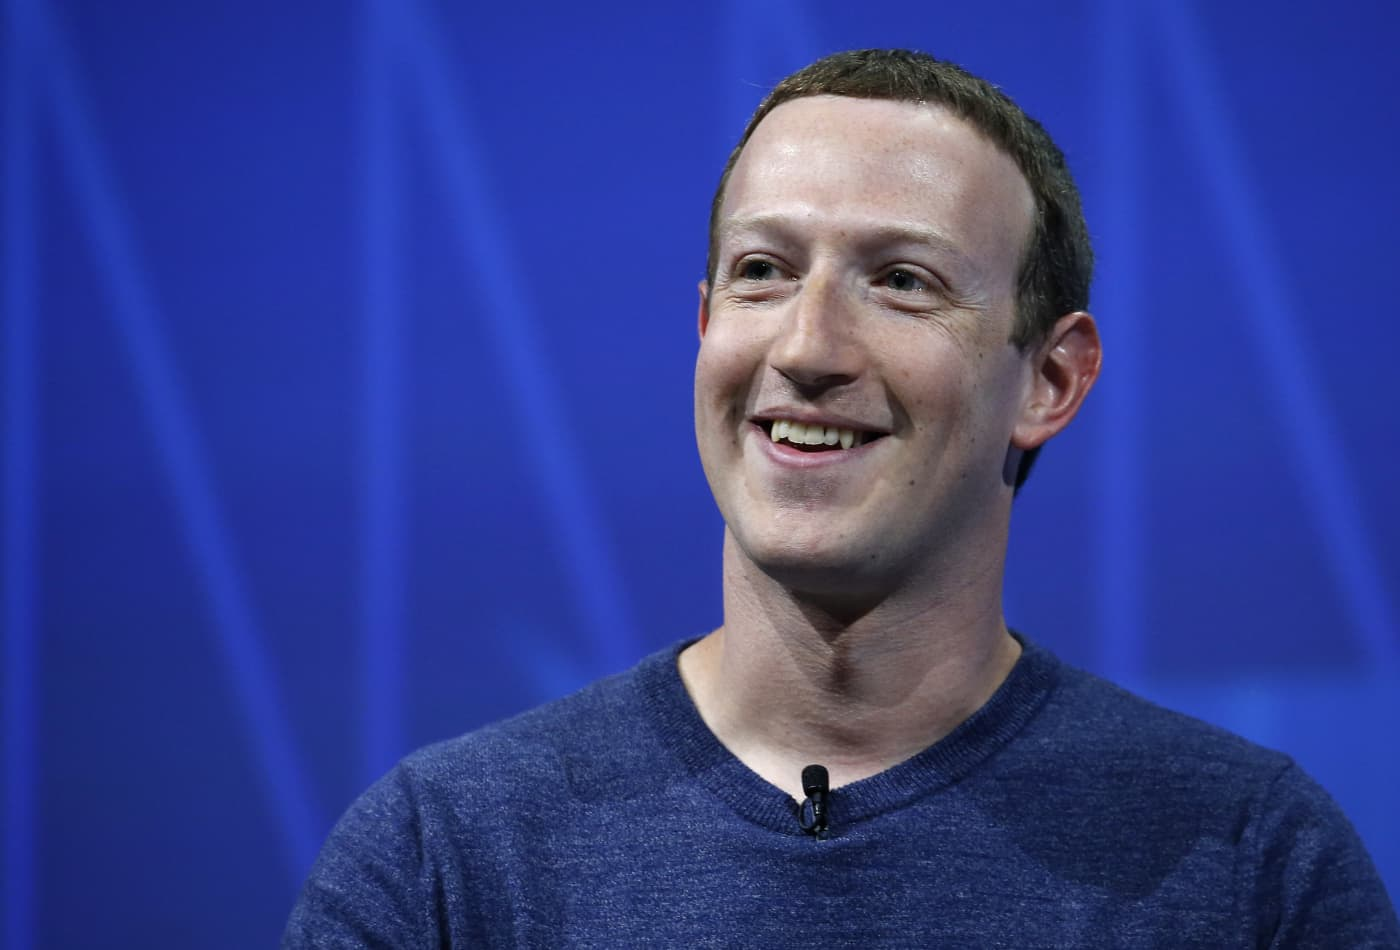 Facebook to buy $100 million worth of unpaid invoices from 30,000 small businesses owned by women and minorities